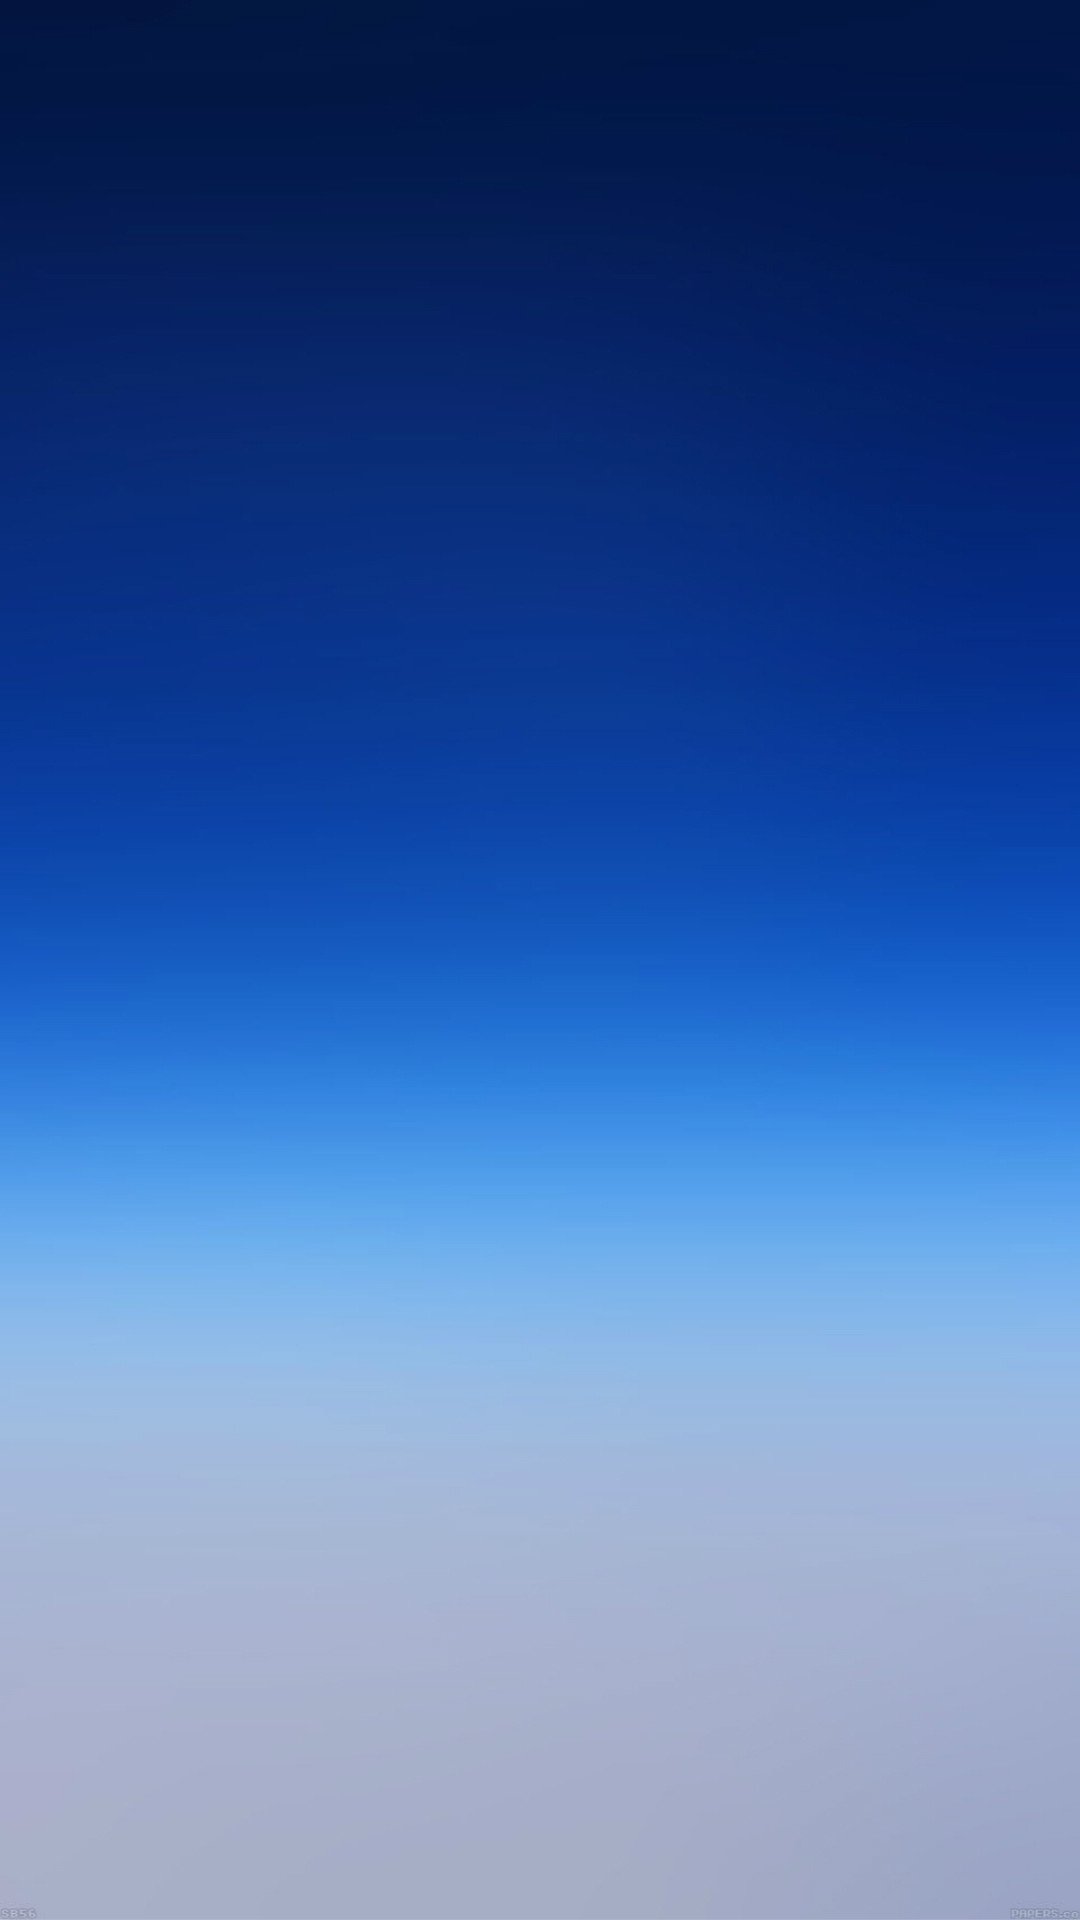 1080x1920 Abstract Pure Simple Blue Gradient Color Background #iPhone #6 #plus # wallpaper